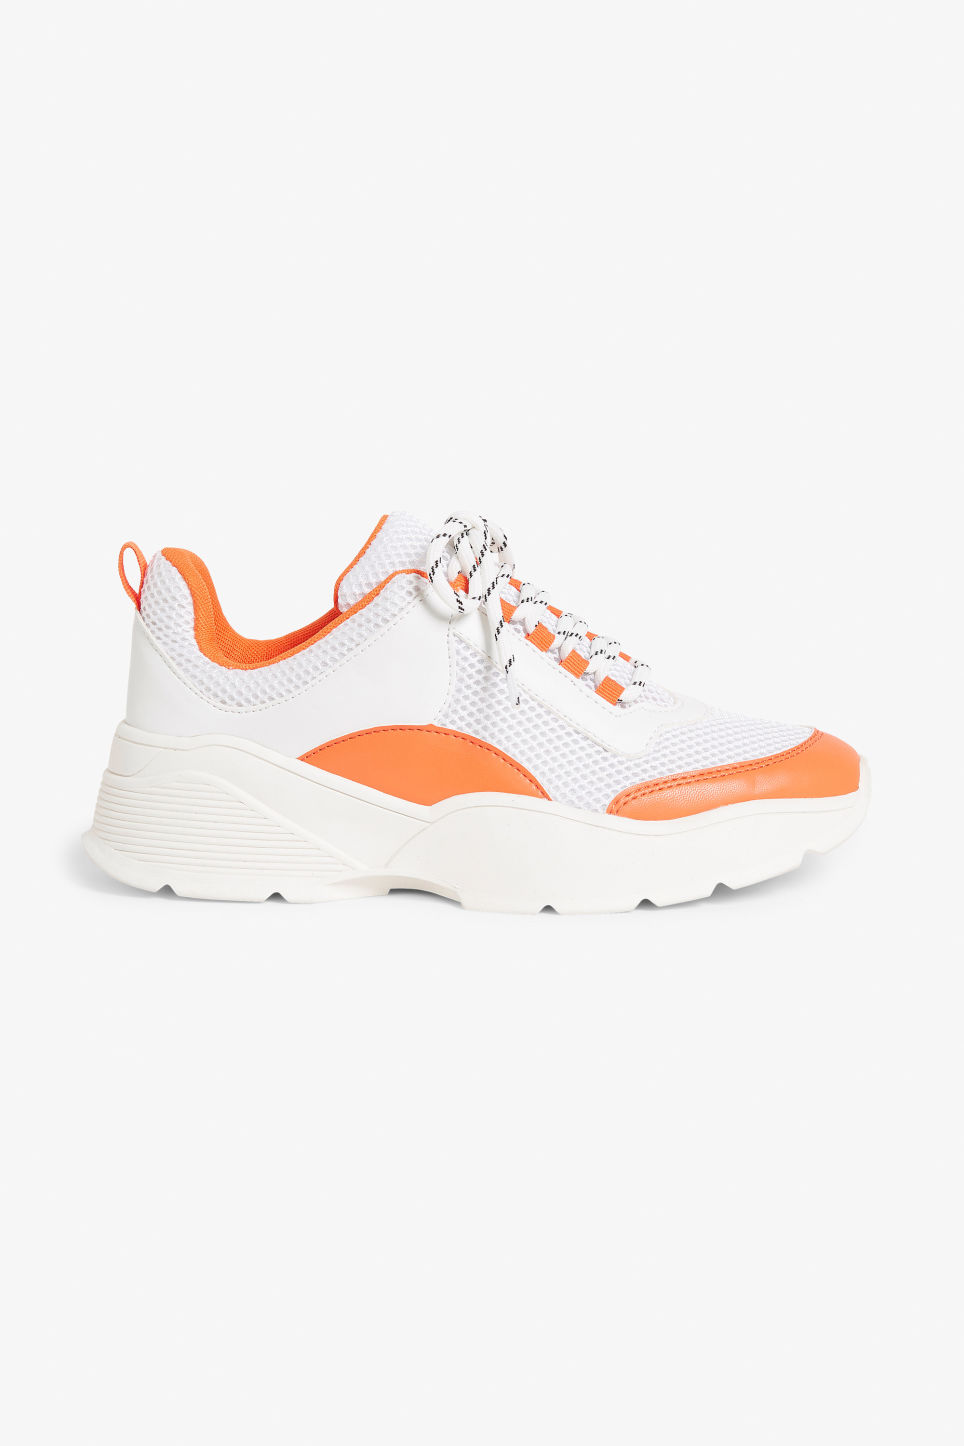 Detailed image of Monki low-top sneaker in orange